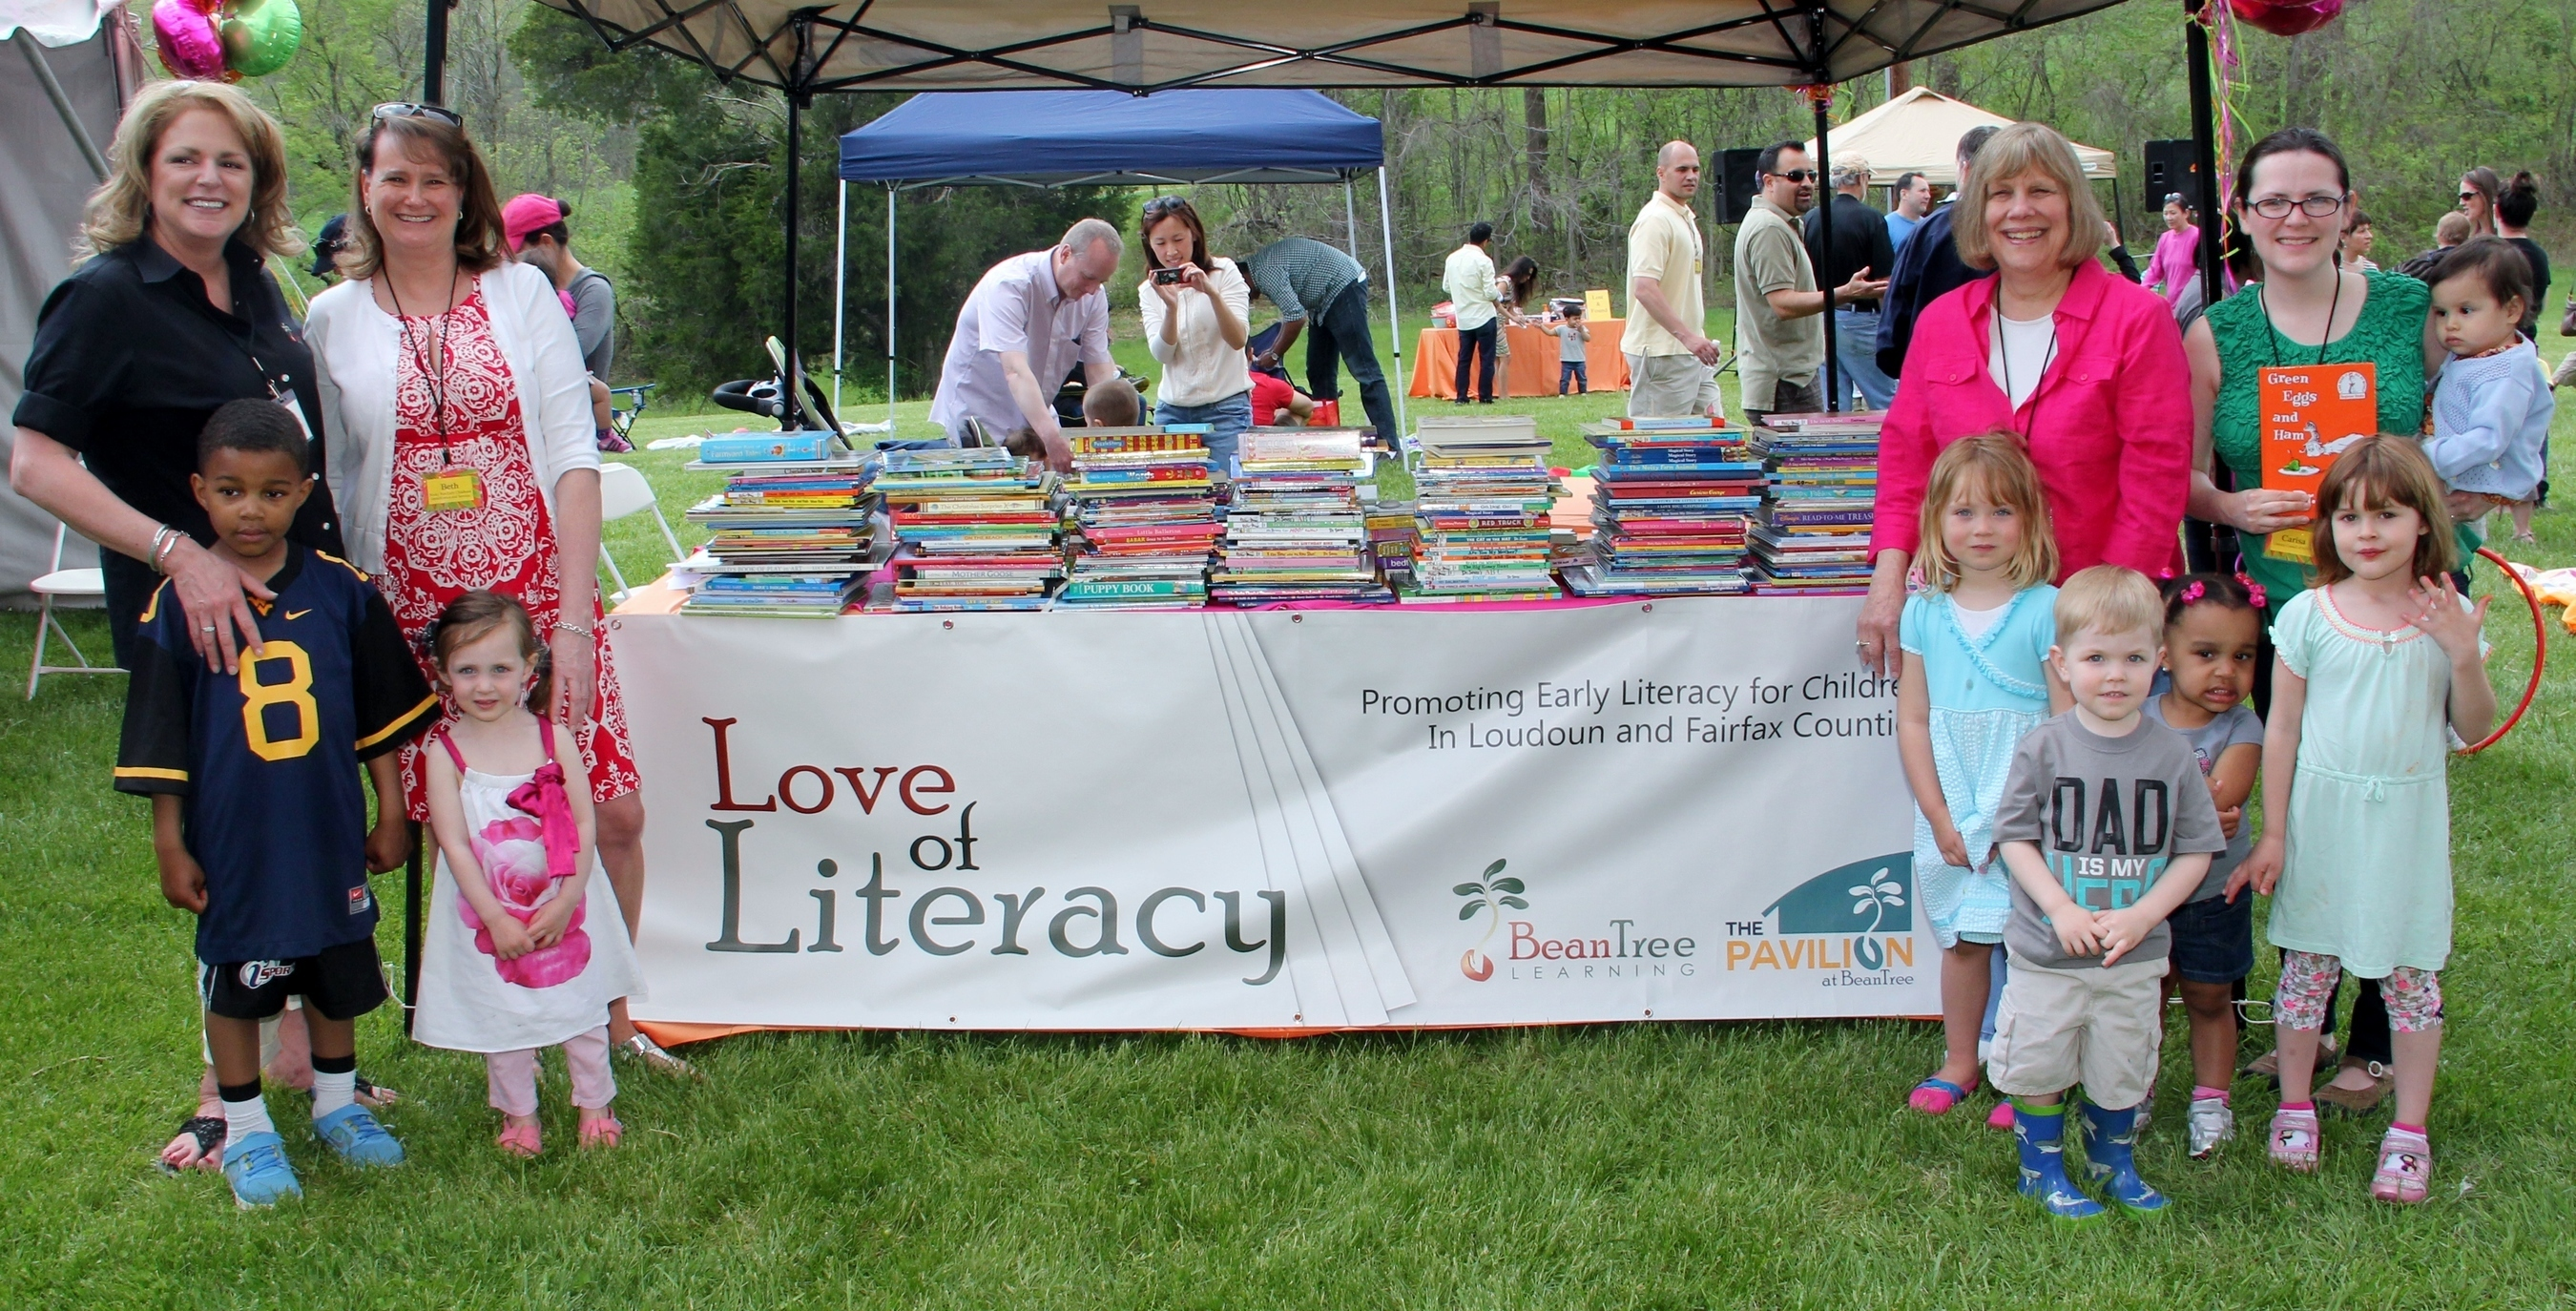 6th Annual Love of Literacy Campaign is Launched